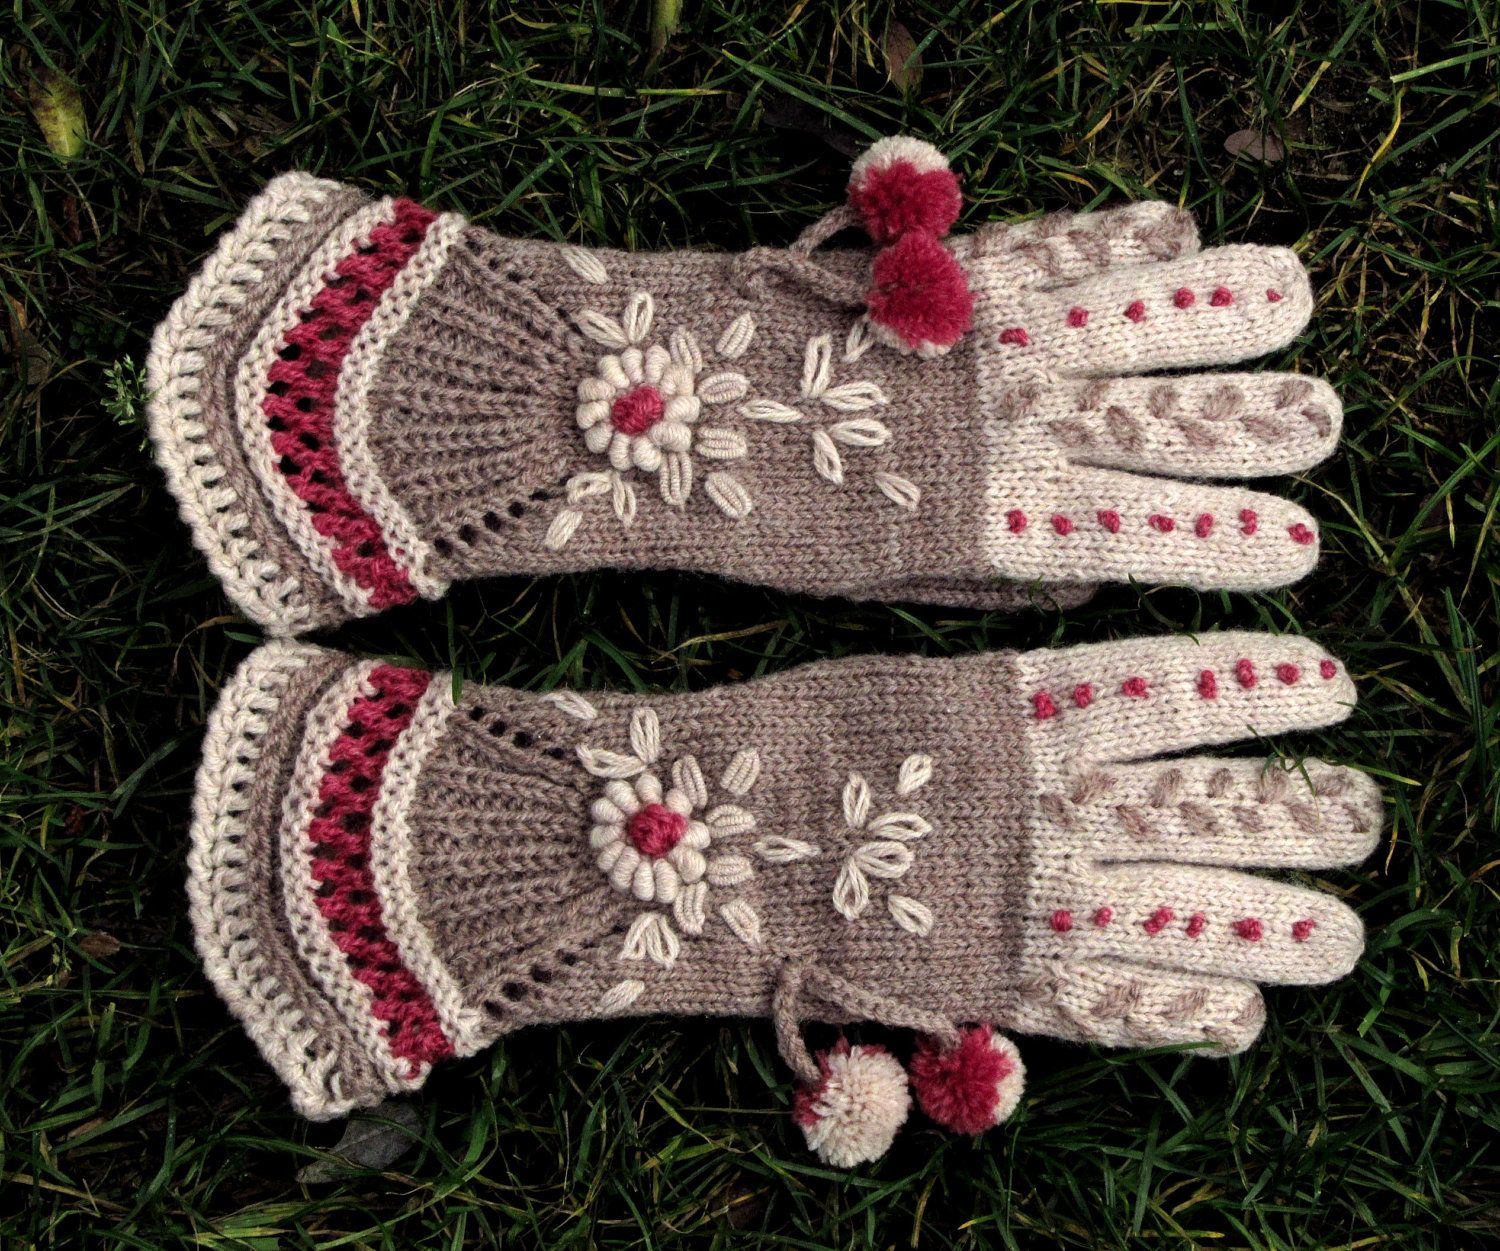 """Vintage Victorian Lace Gloves - """"Above the Clouds""""  by Dom Klary."""